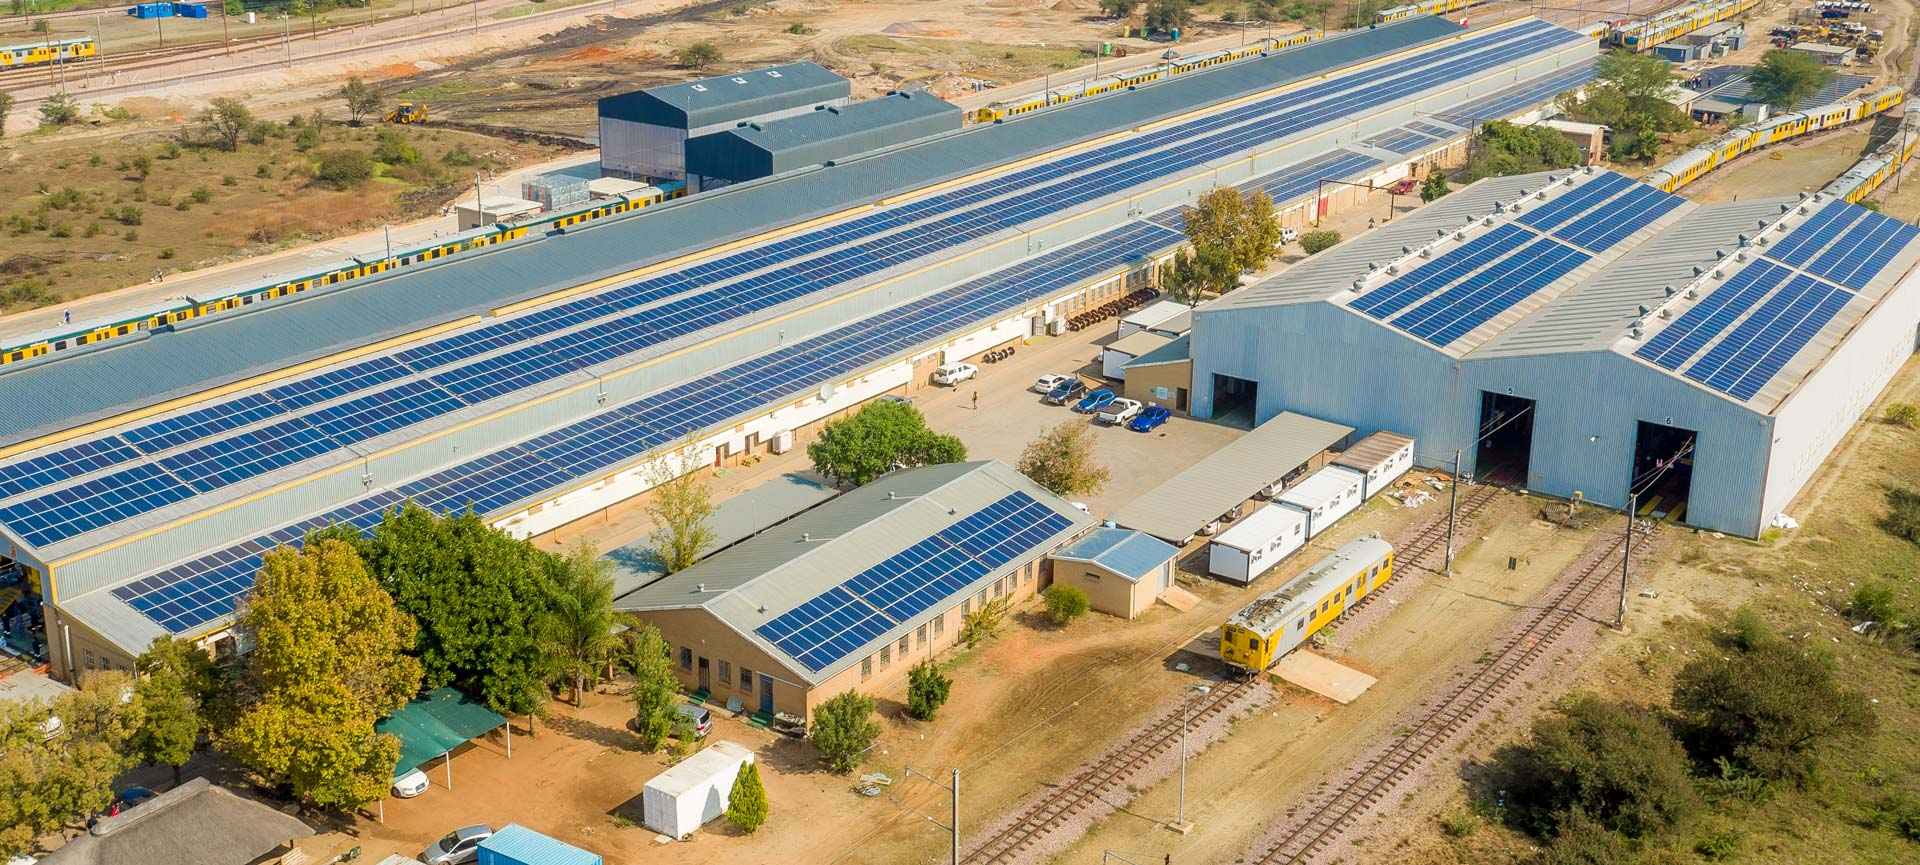 Over 10MW of solar plants installed across South Africa